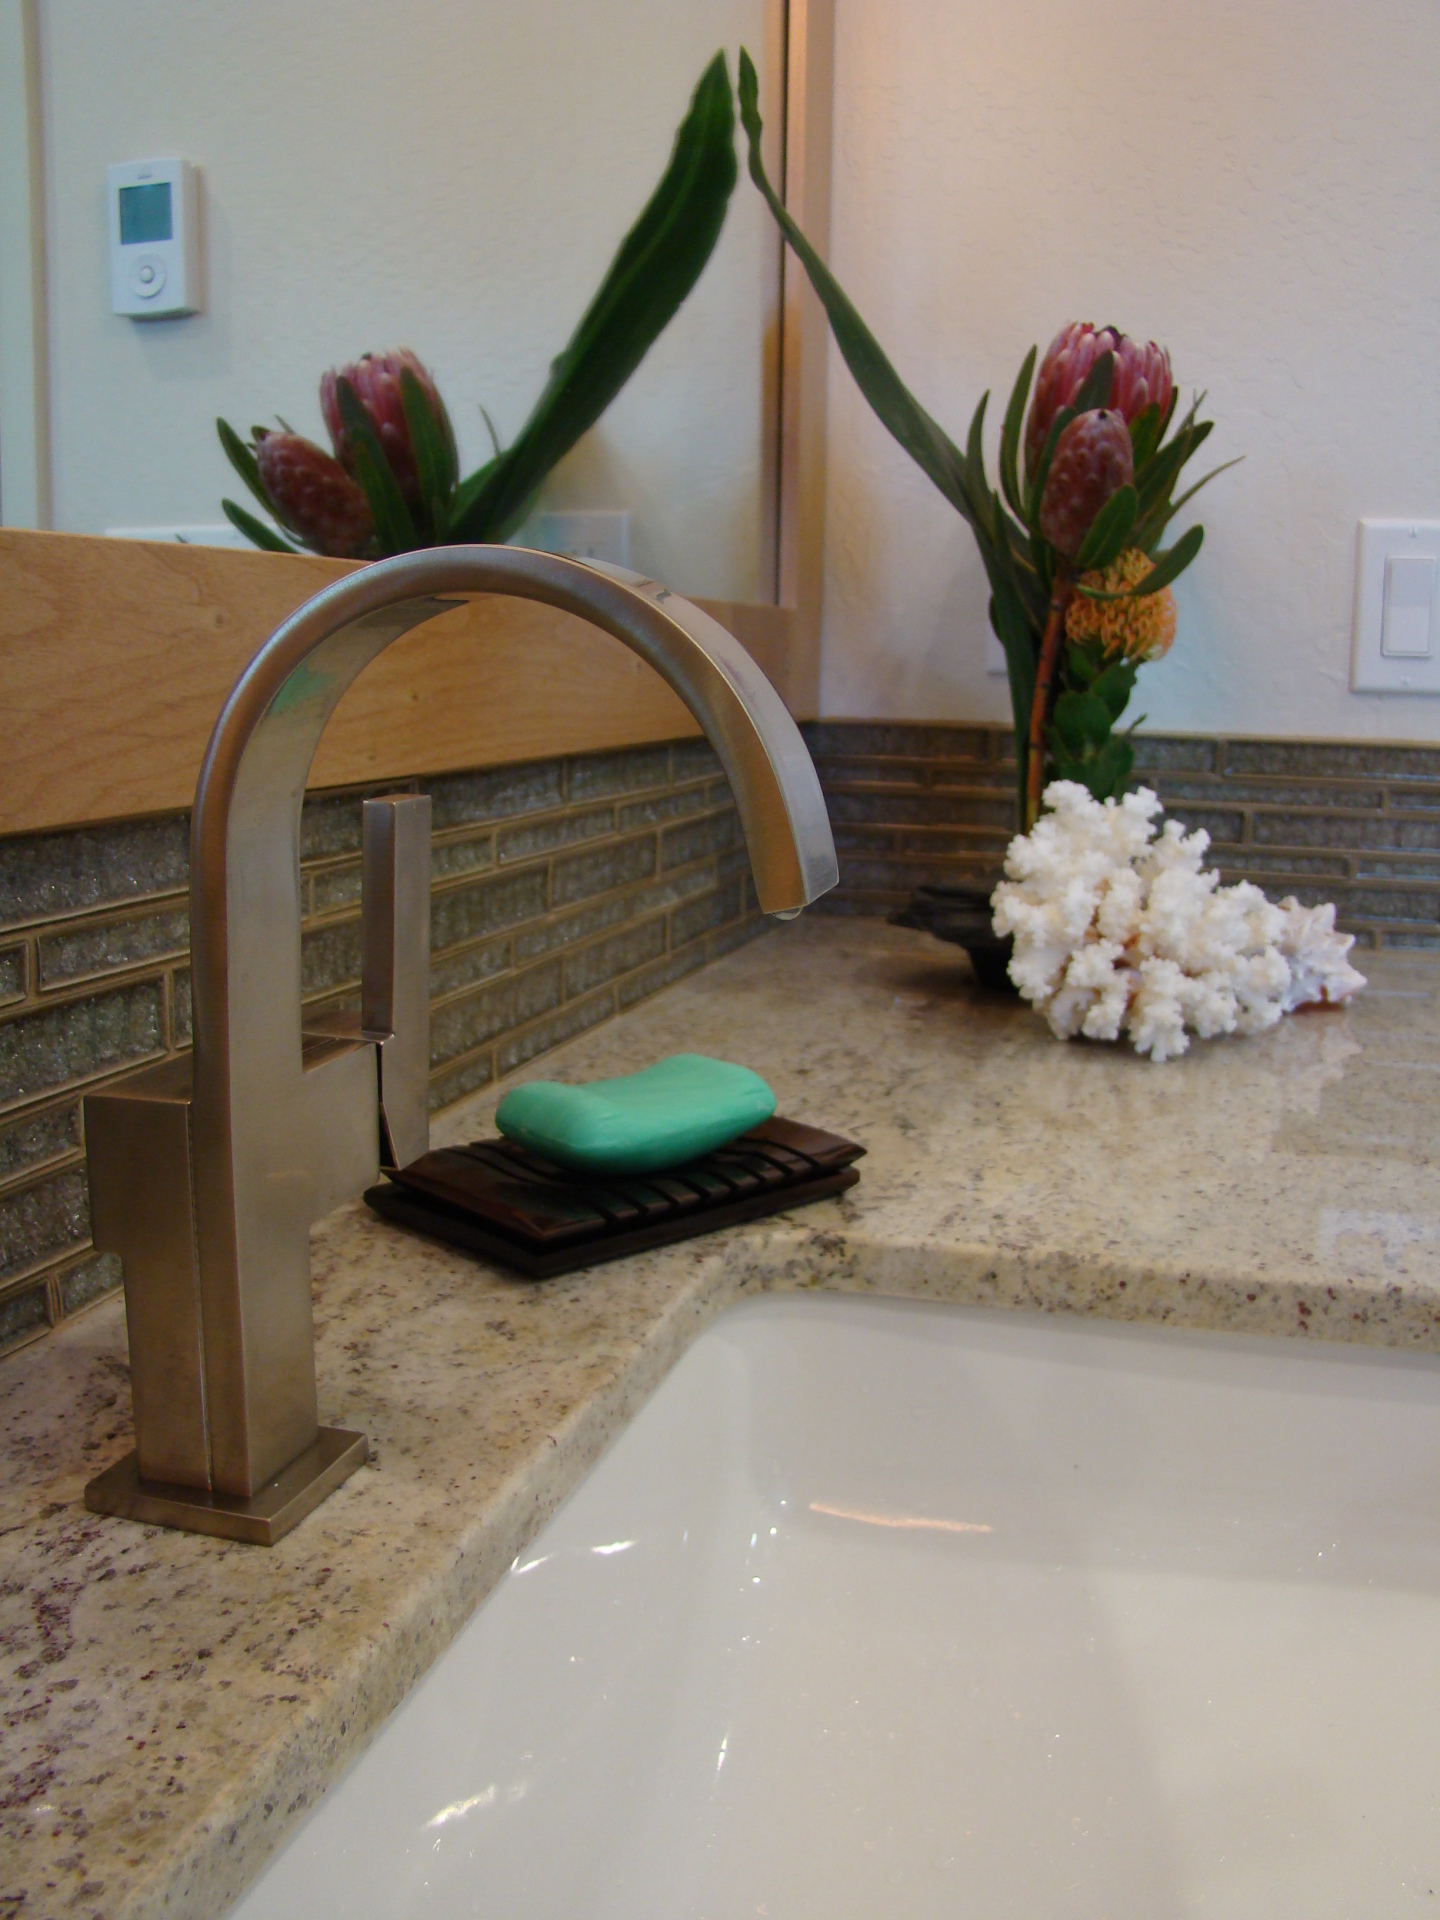 Fiorito Interior Design, interior design, remodel, bathroom, tropical, custom vanity, marble counter, sink, faucet